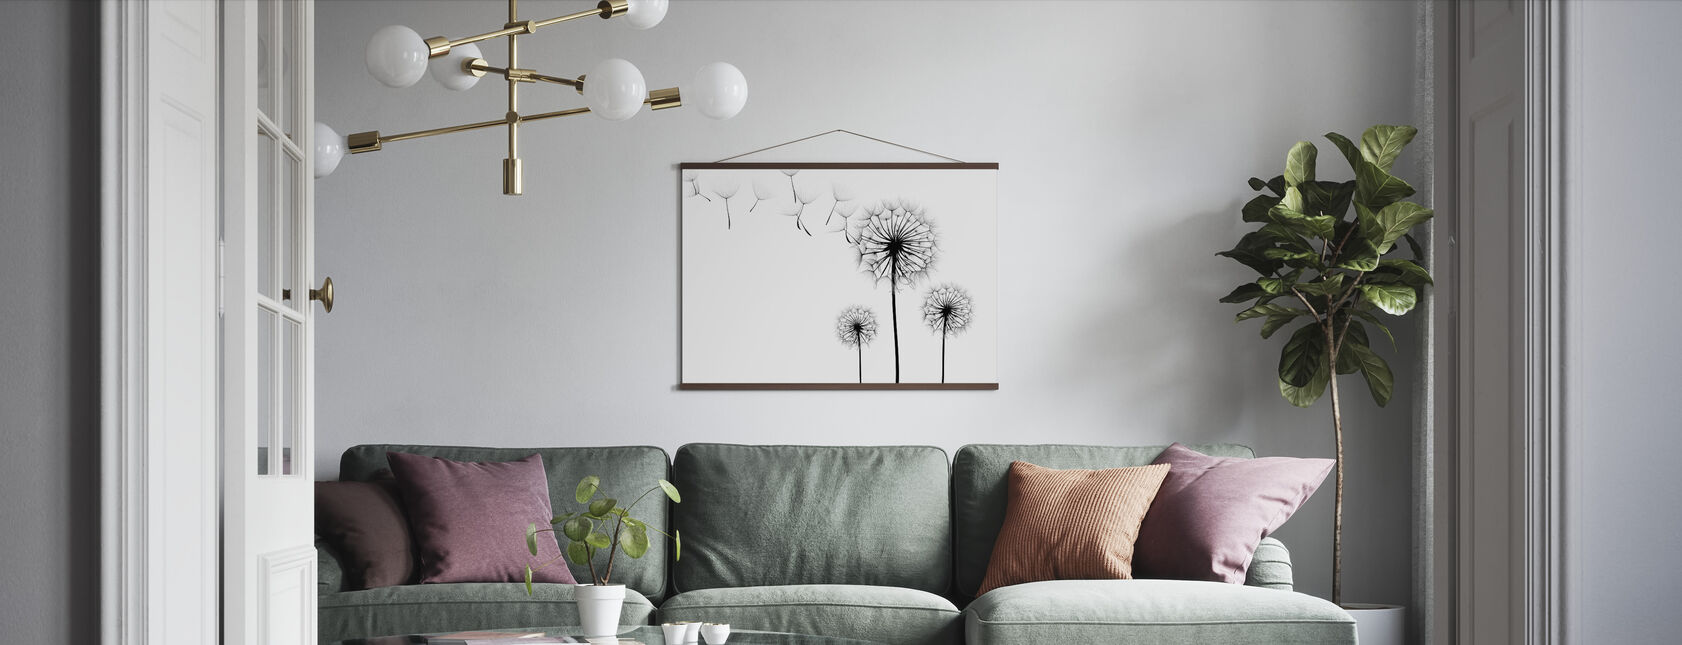 Silhouette of Dandelions Seeds, black and white - Poster - Living Room